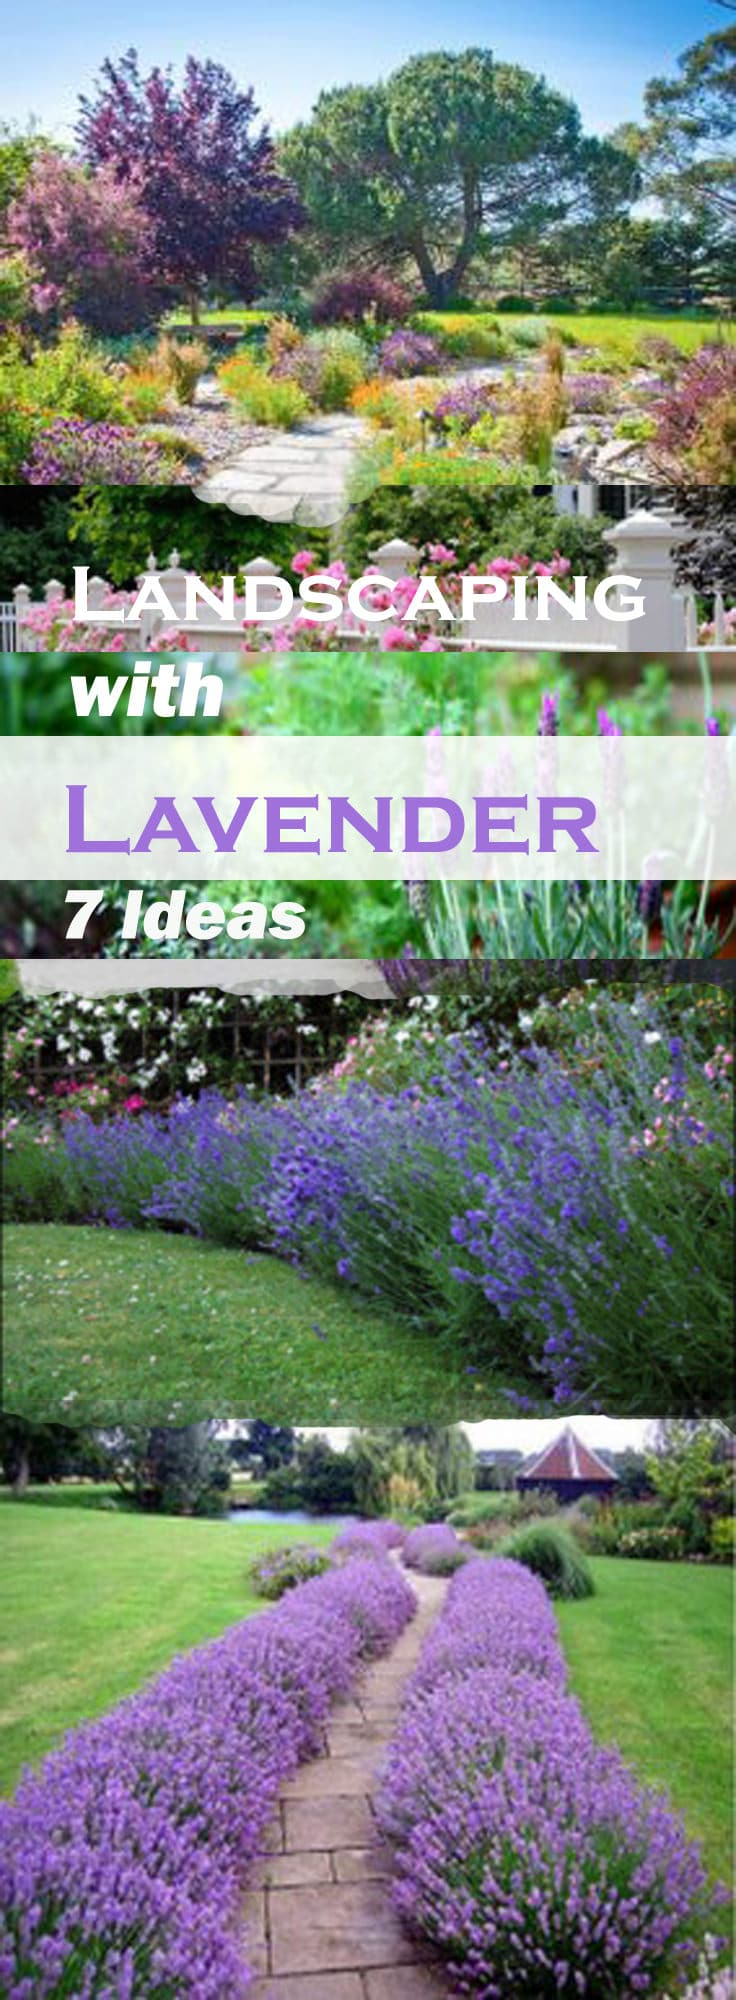 Garden Ideas 2015 Uk landscaping with lavender | 7 garden design ideas